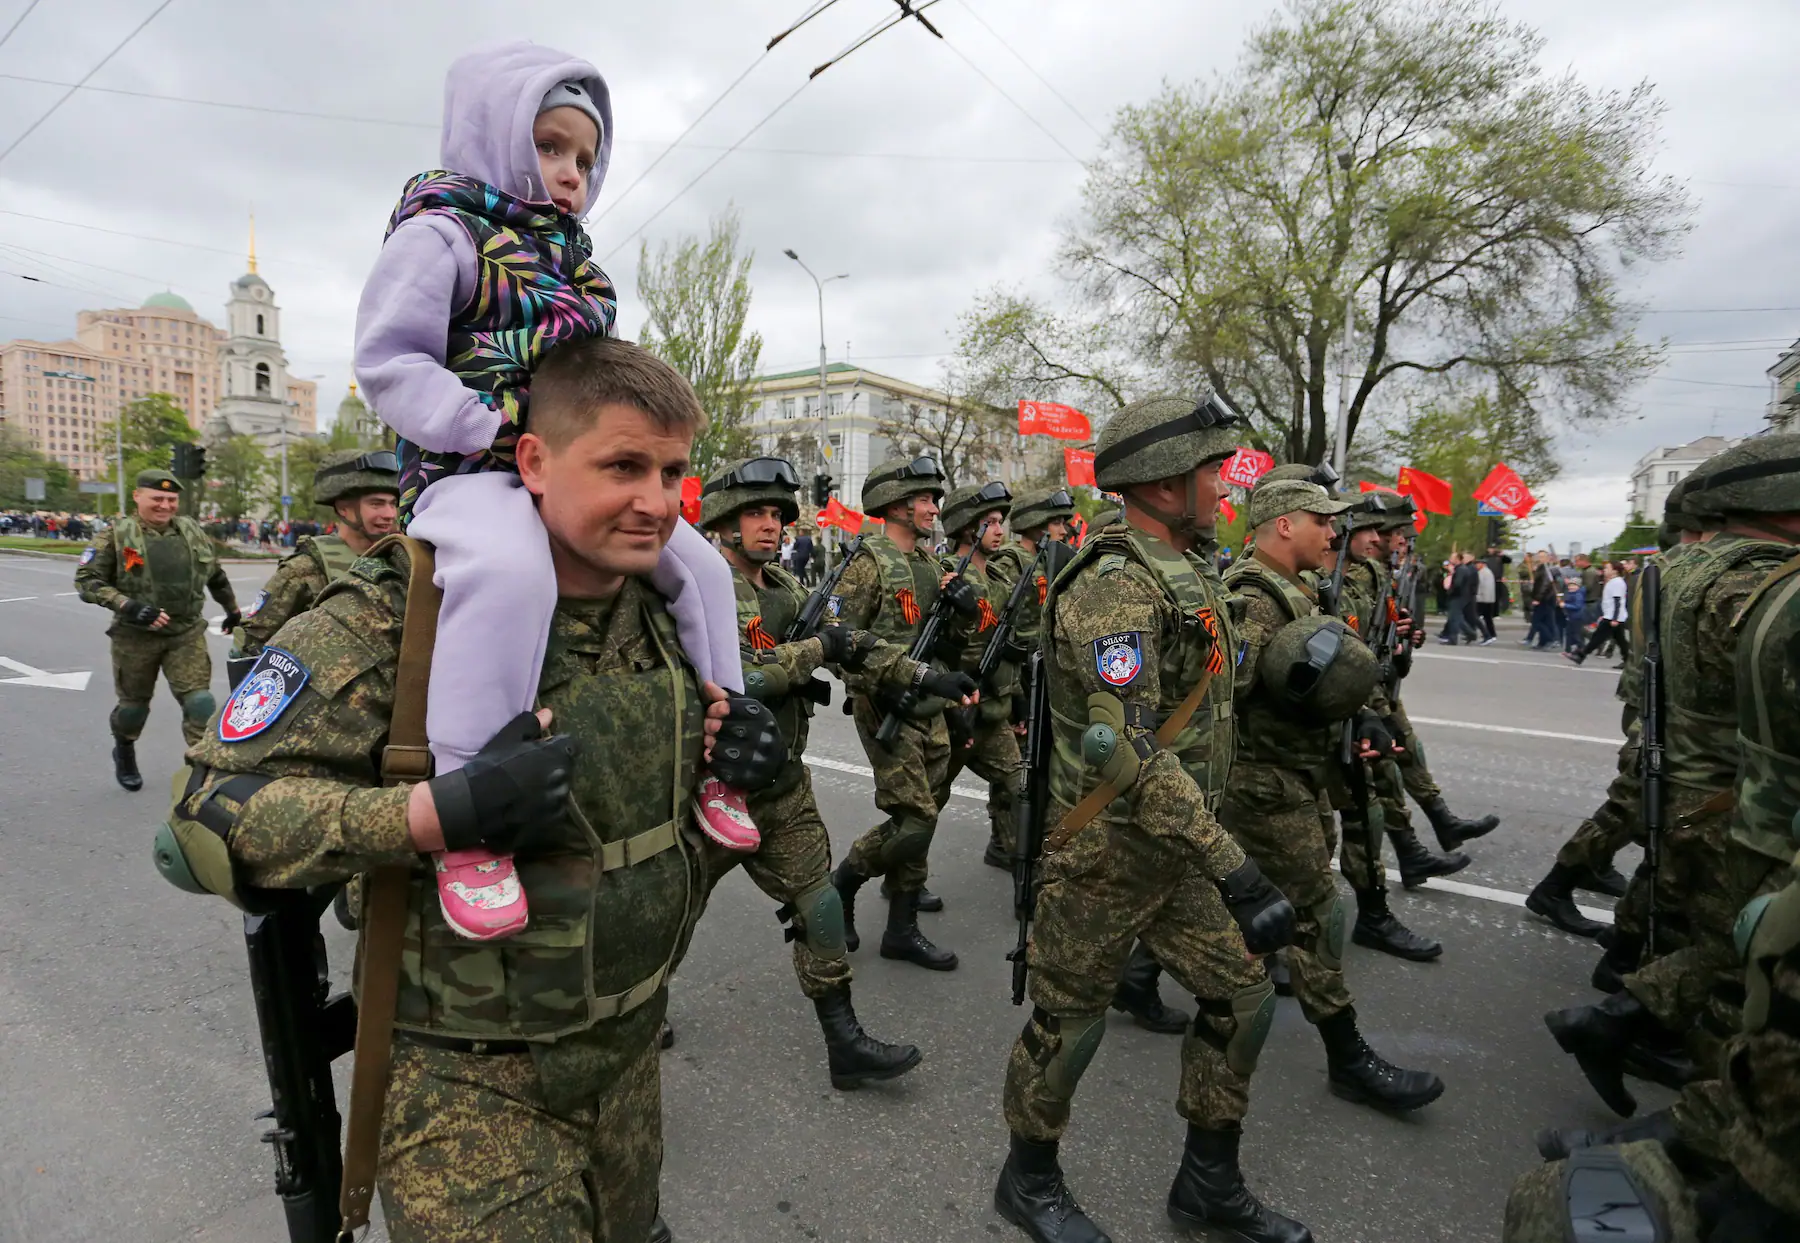 A participant carries a child on his shoulders (Photo: Washington Post)